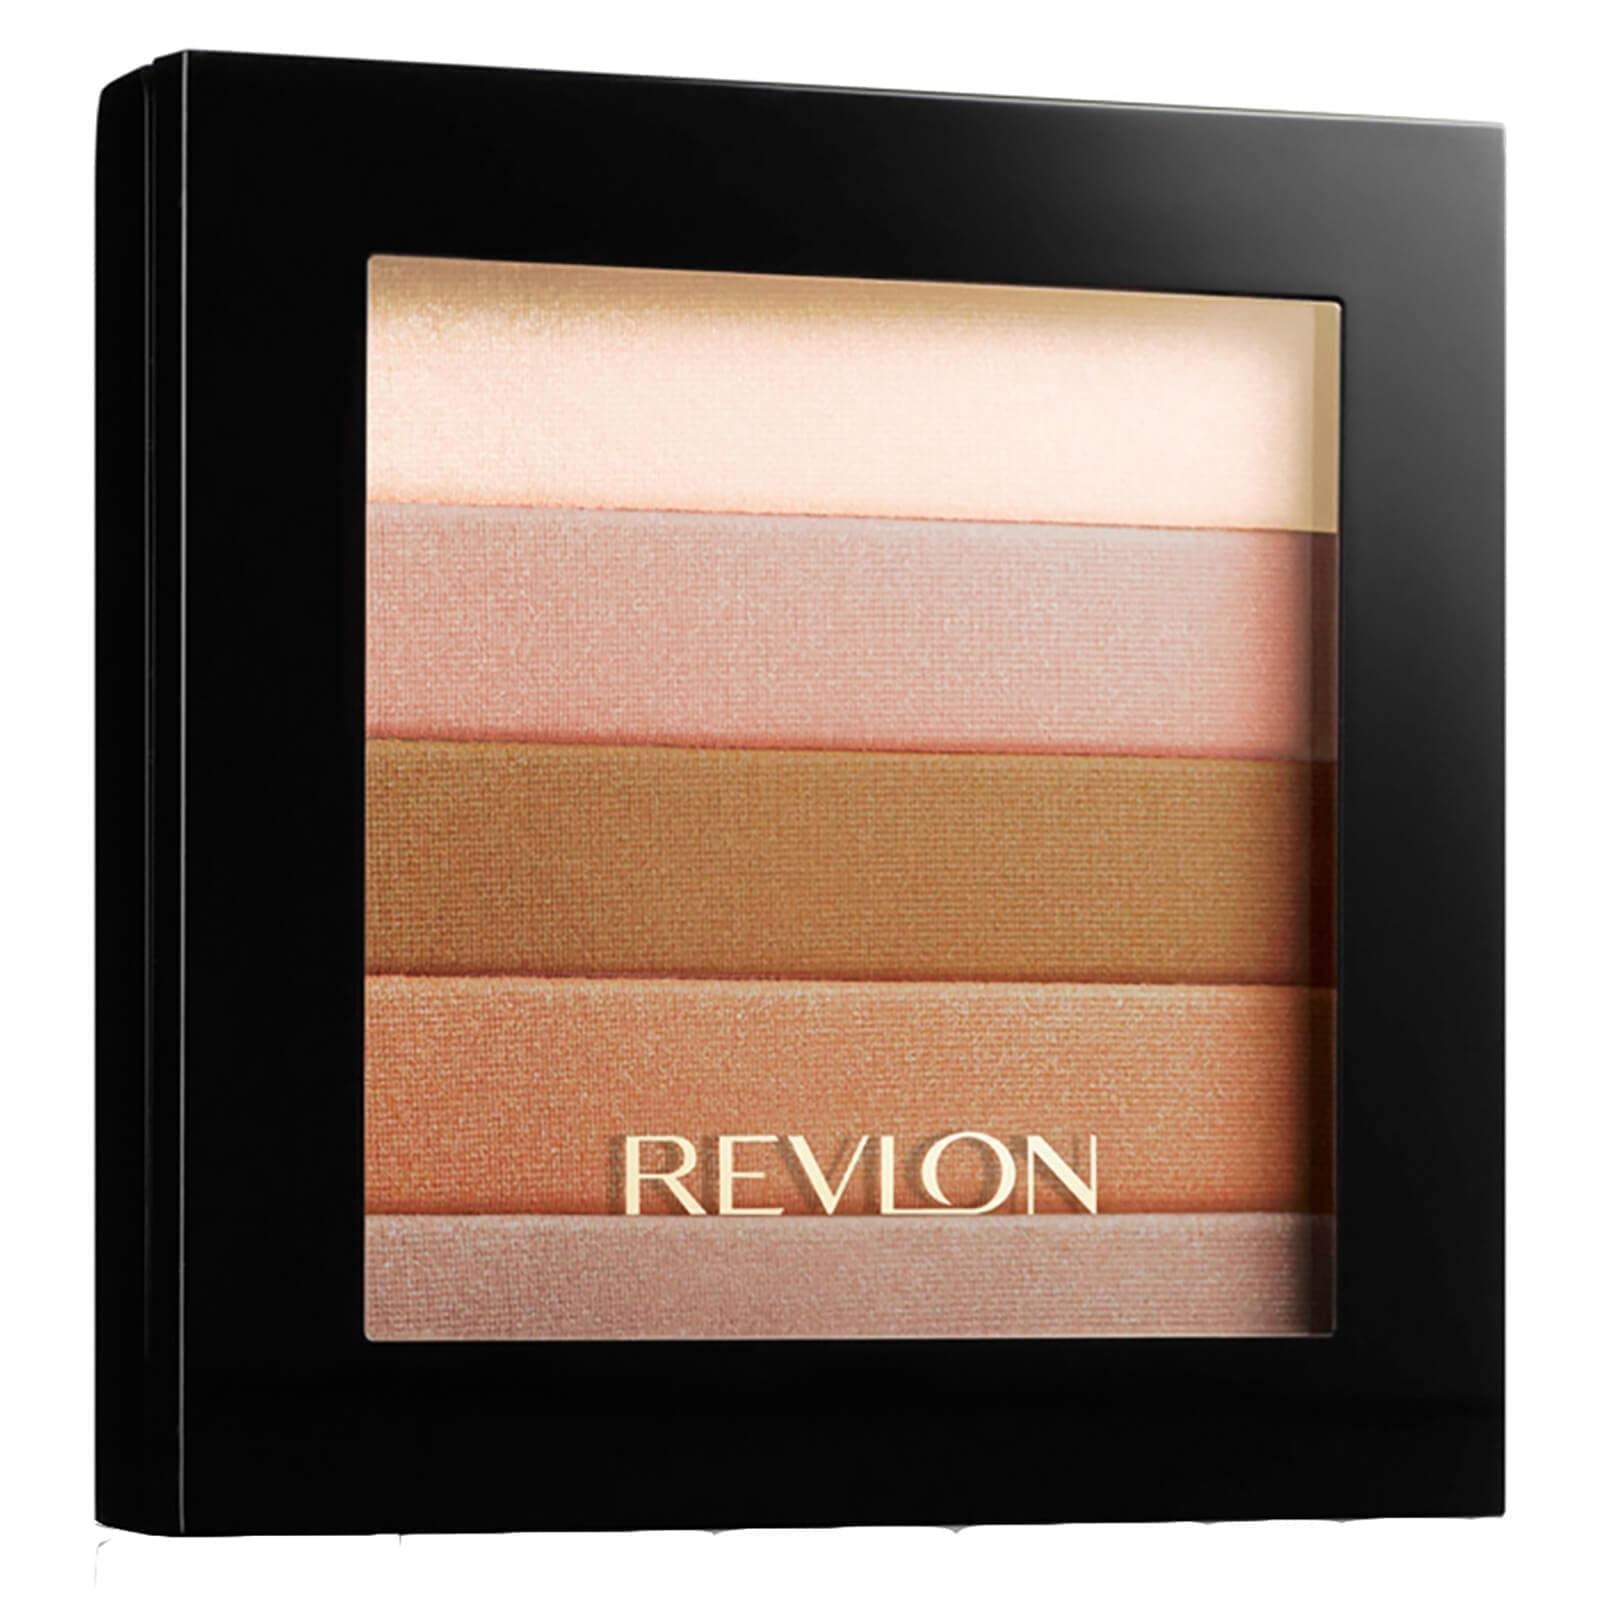 Revlon_Blush_Highlighting_Palette_bronze_glow-2